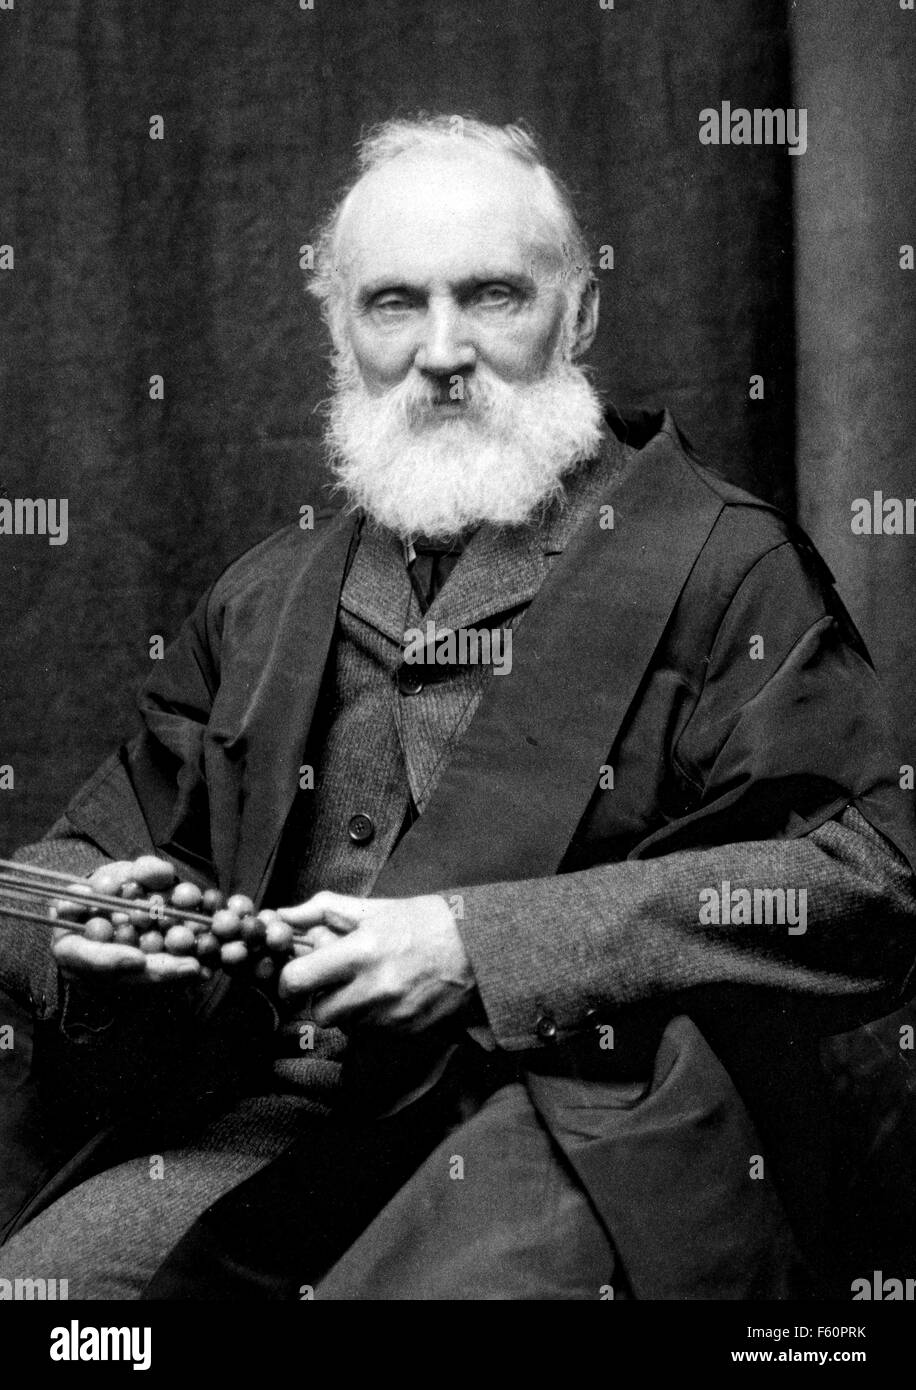 WILLIAM THOMSON, Lord Kelvin (1824-1907) Irish physicist and engineer about 1900 - Stock Image